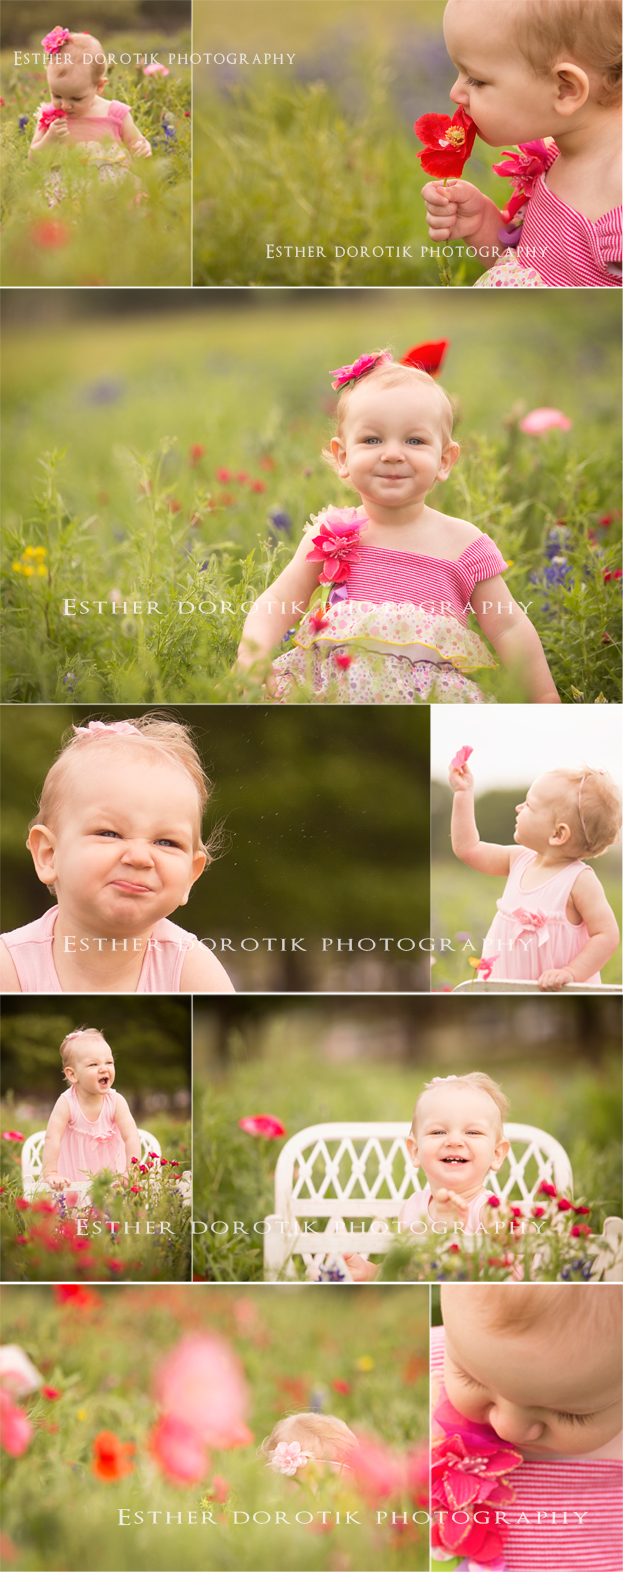 one-year-old-photography-session-in-the-bluebonnets-byPlano-Frisco-baby-photographer